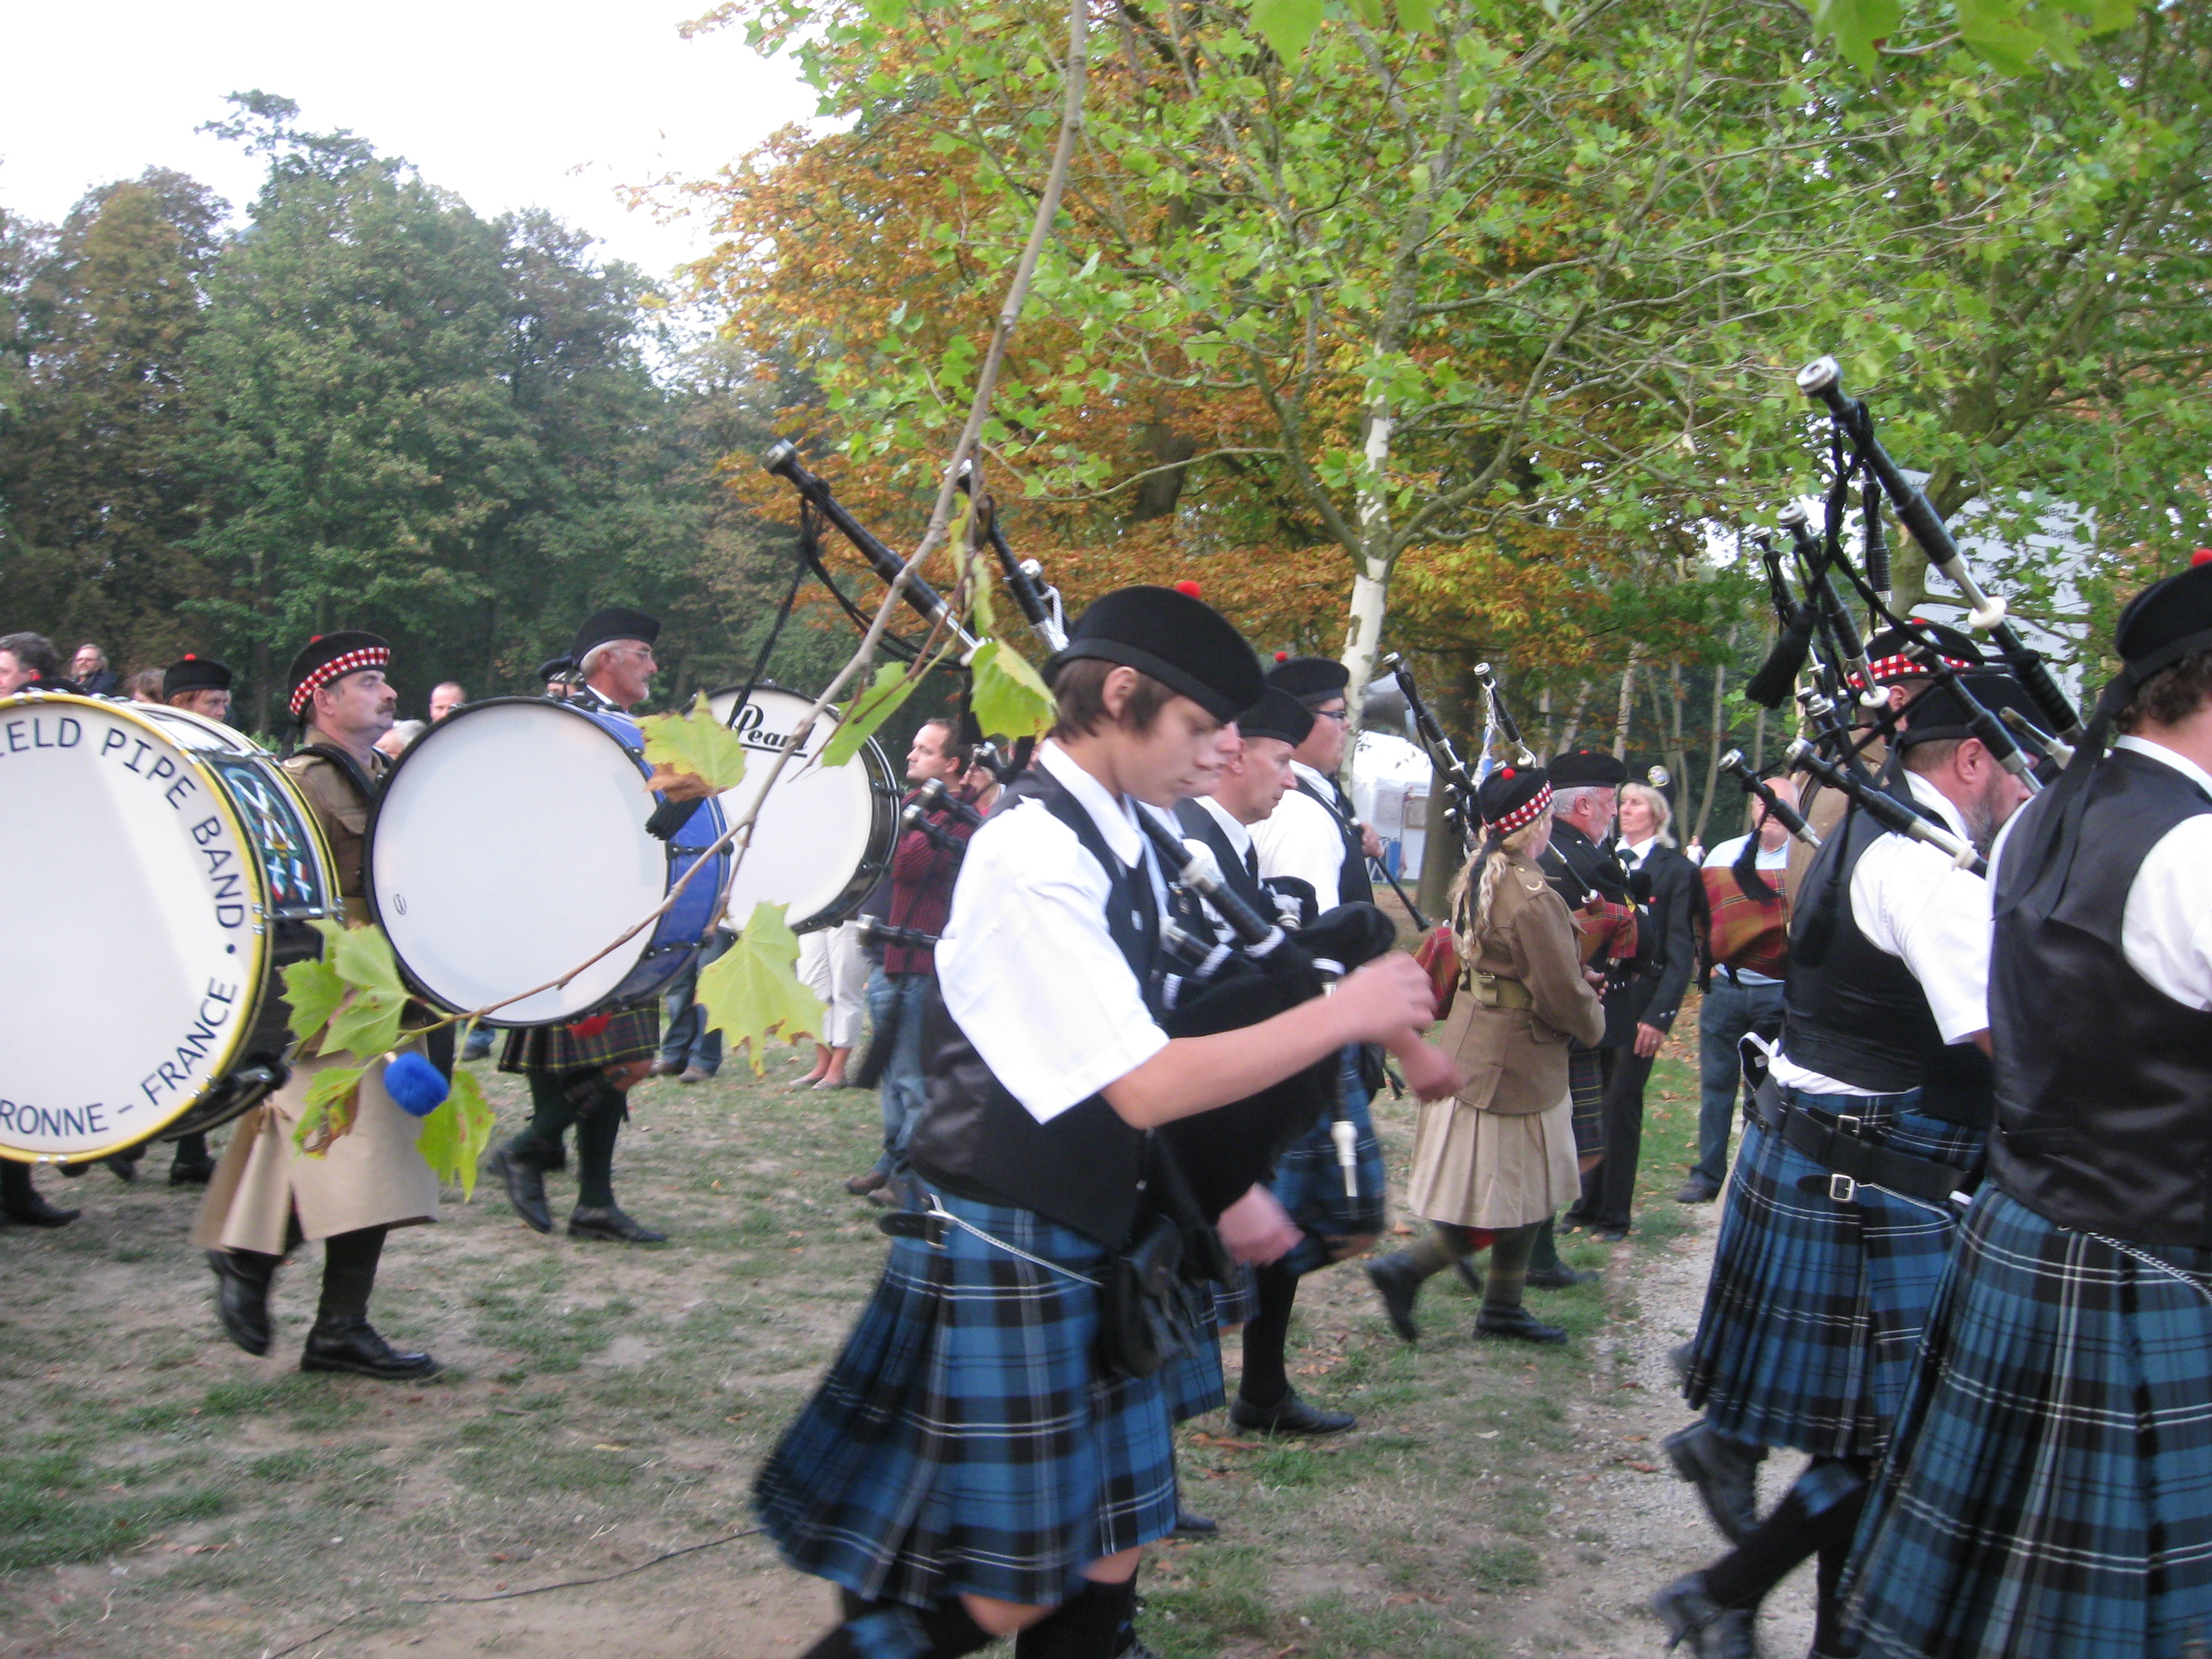 bagpipes 1012011049401050247225045